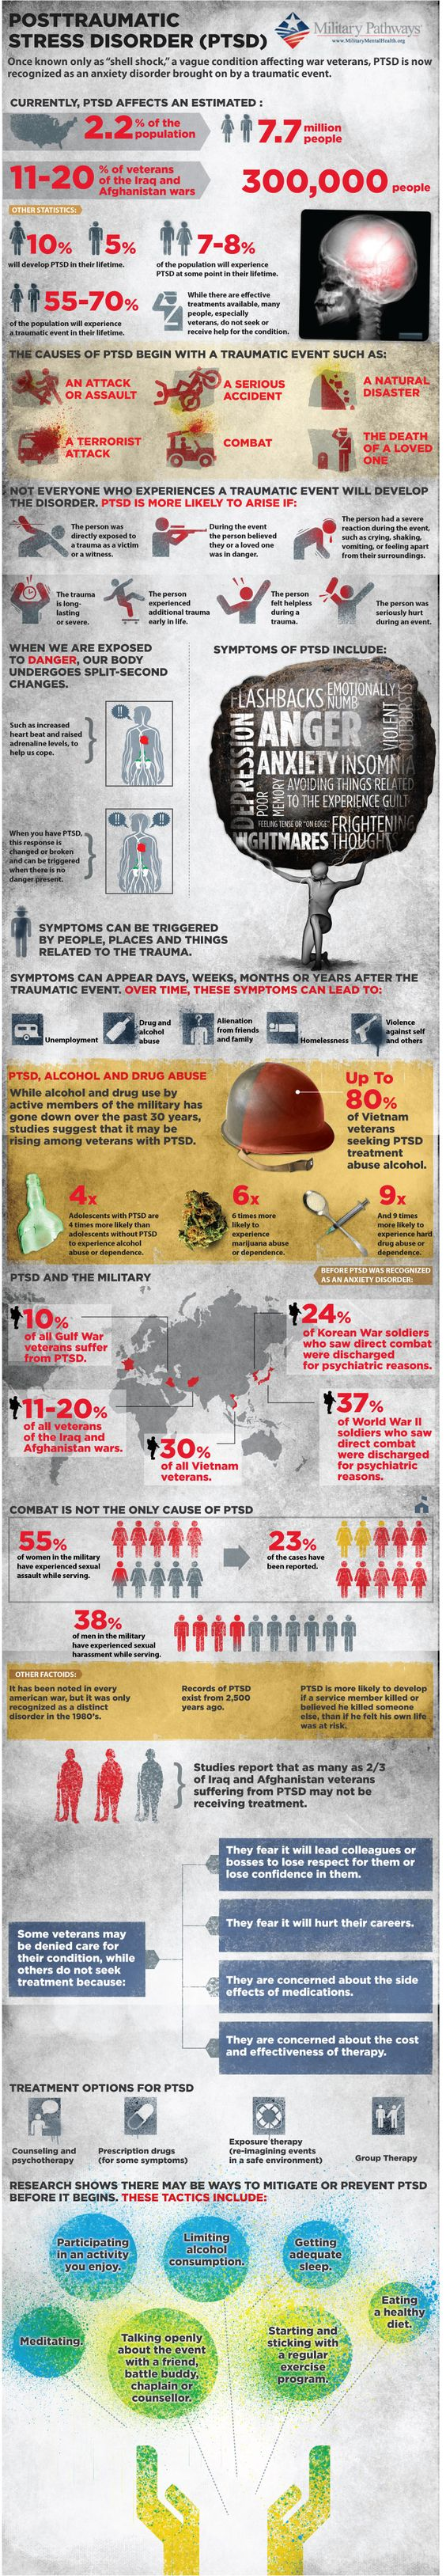 """#Once known only as """"shell shock,"""" a vague condition affecting war veterans, PTSD is now recognized as an anxiety disorder brought on by a traumatic event. - MilitaryAvenue.com Like, Share, Pin! Thanks :)"""